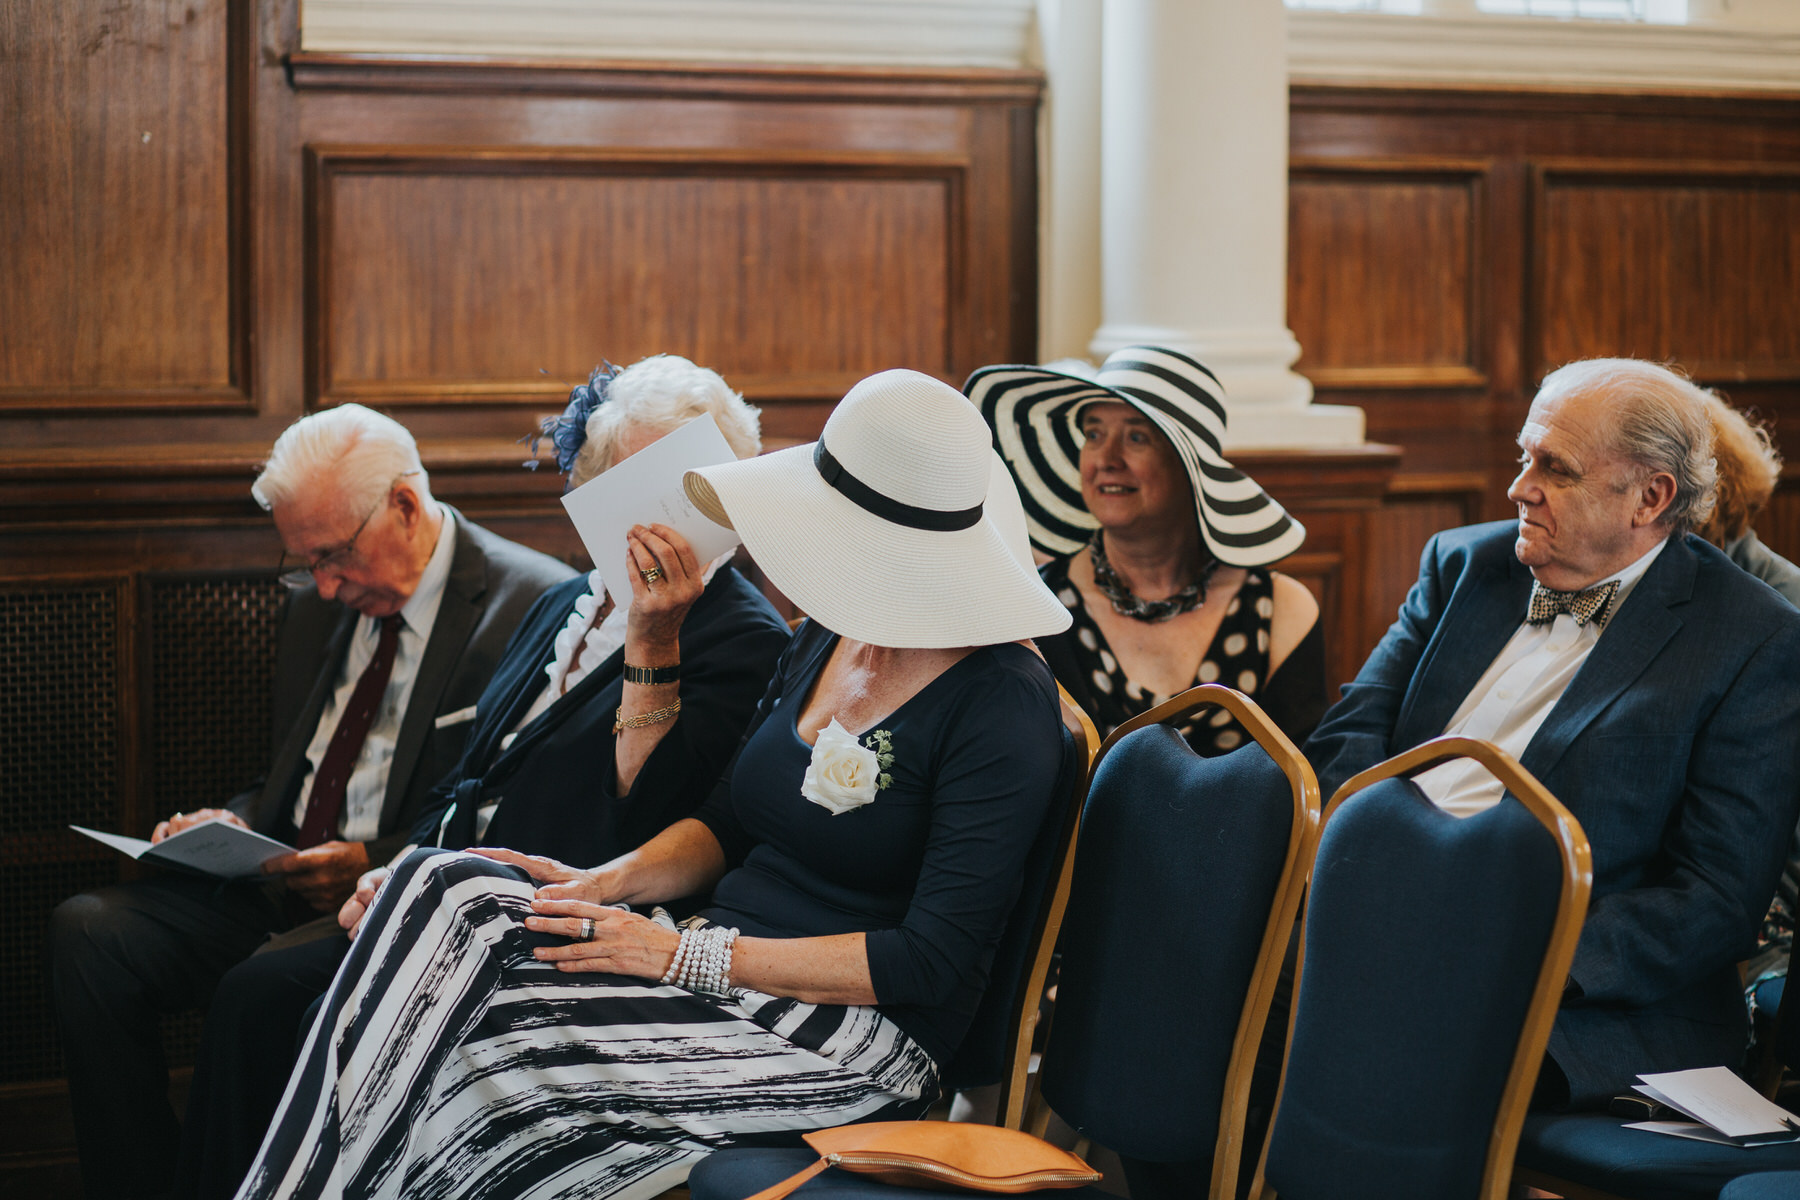 83-Finsbury Town Hall wedding ceremony guest hats stripes.jpg